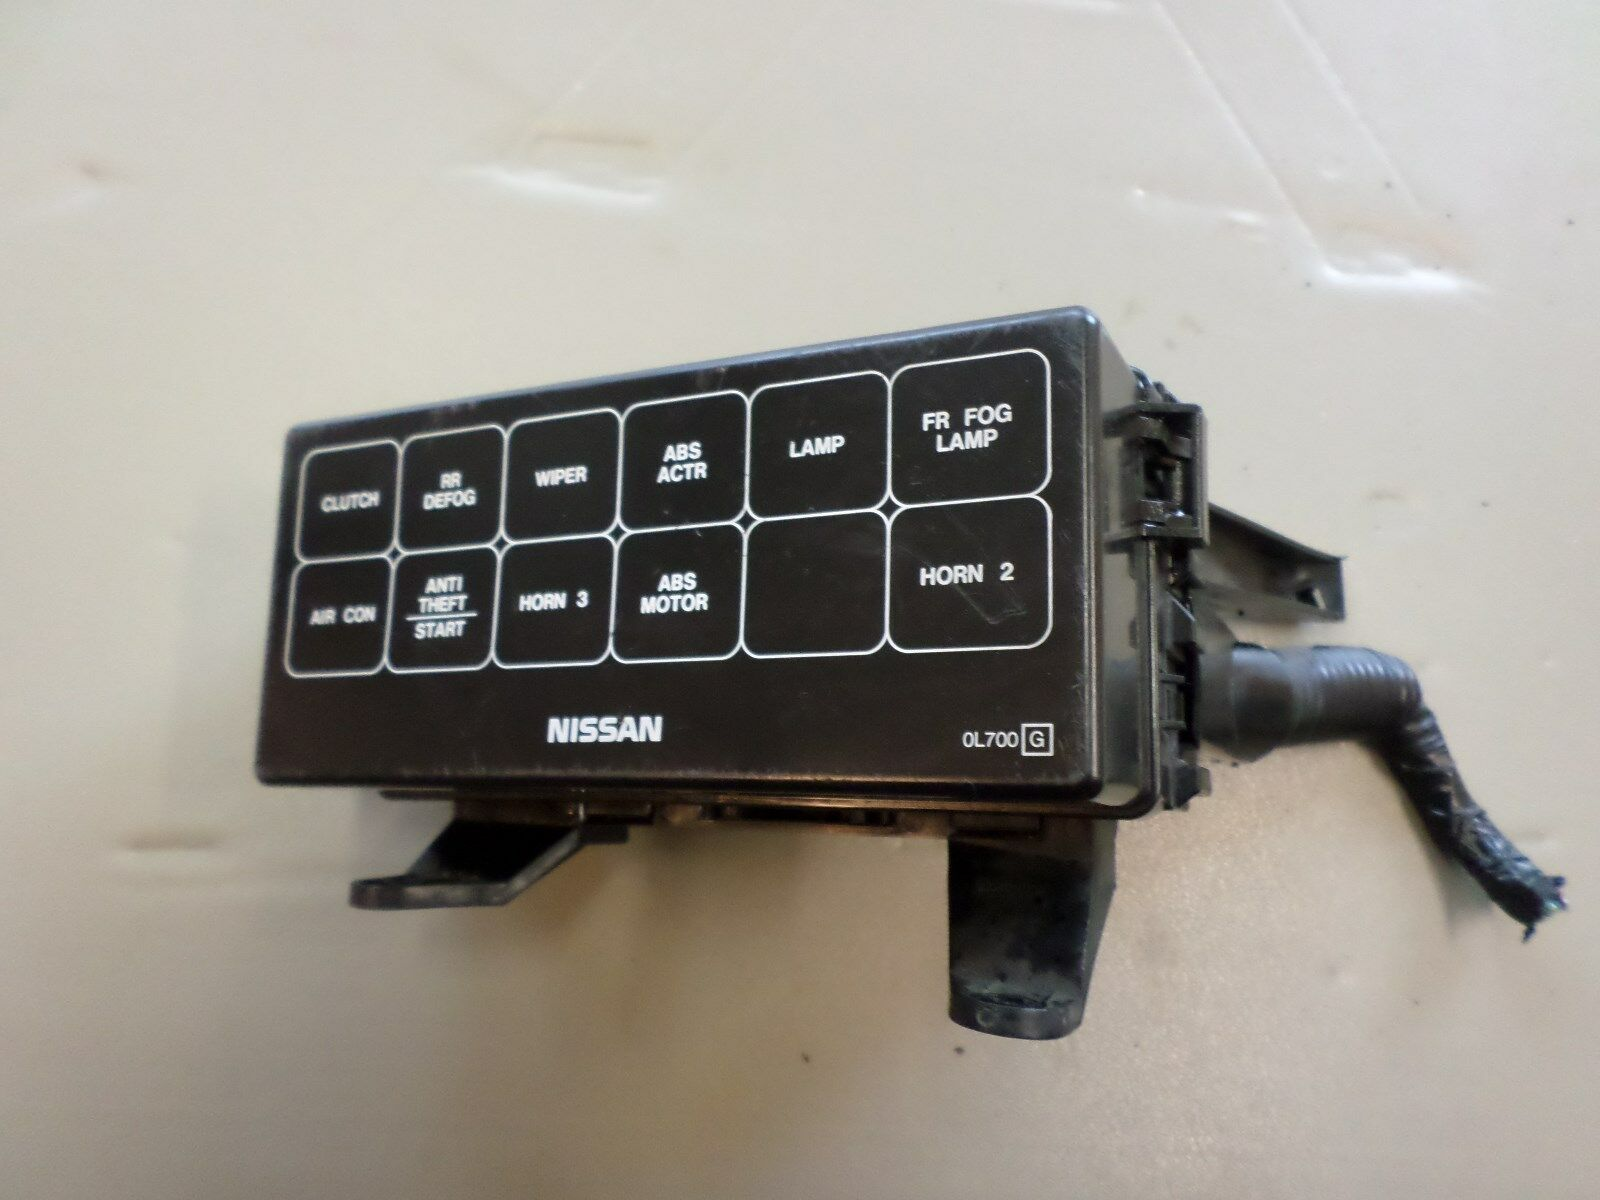 1999 Maxima Fuse Box Manual Guide Wiring Diagram 2000 Accord 1995 Nissan Oem Underhood P N 7154 3053 Ebay